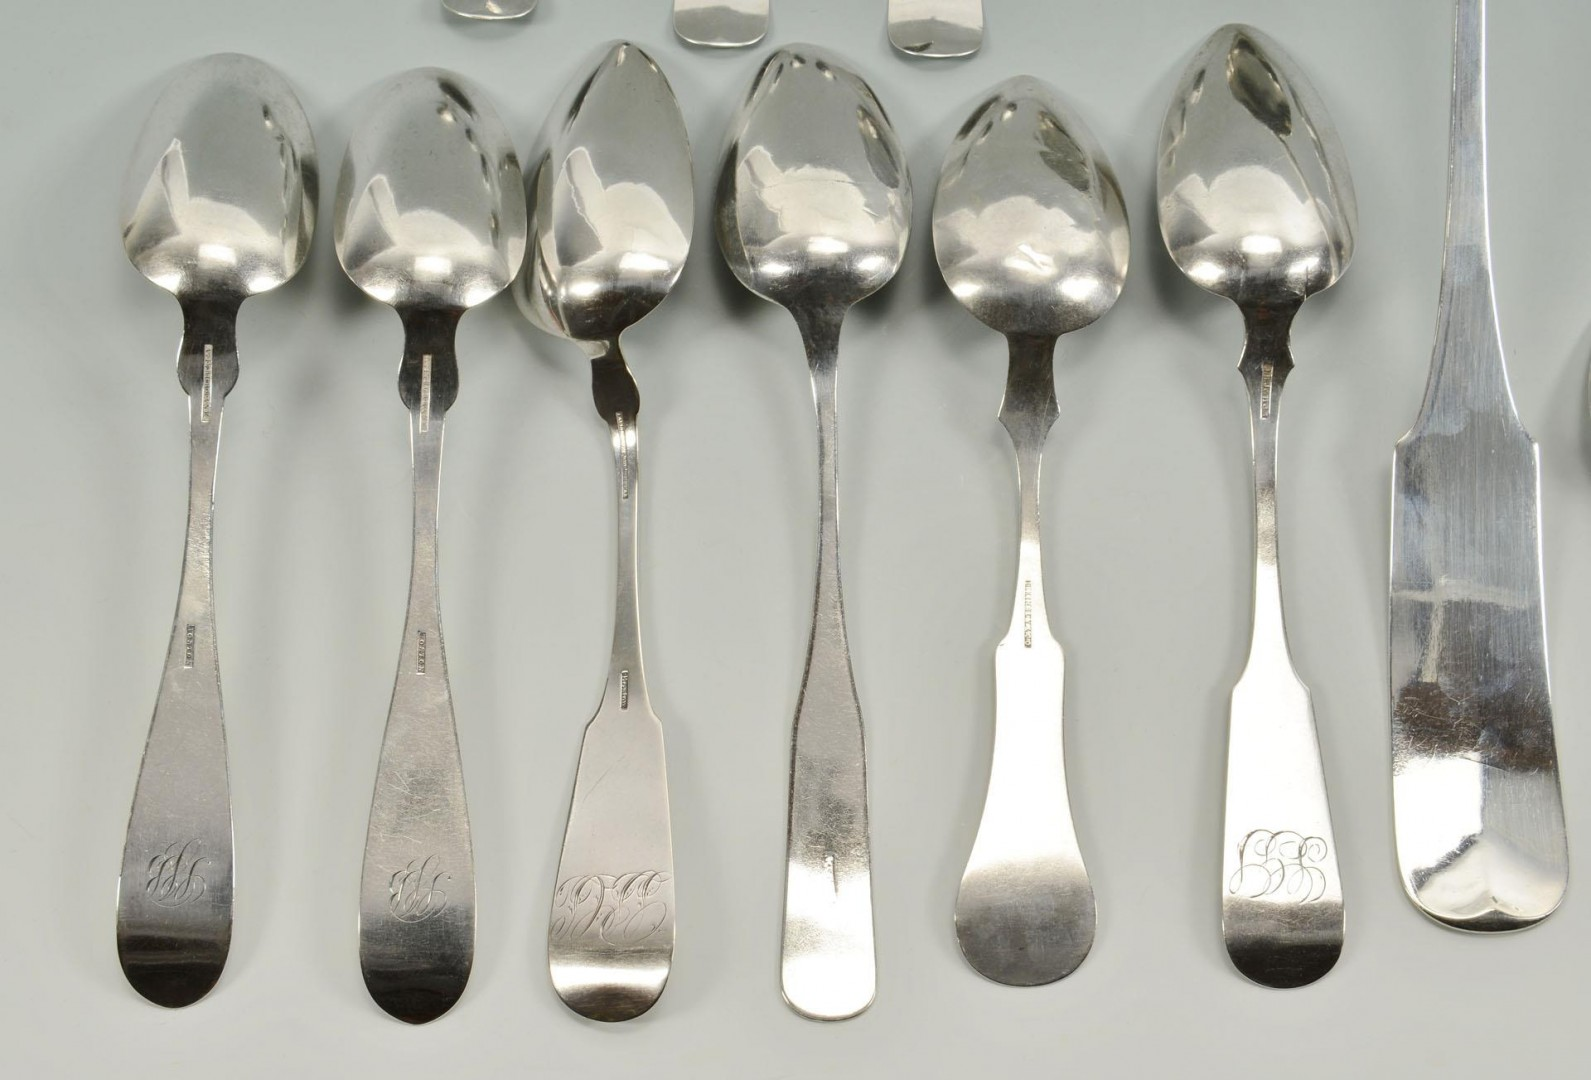 Lot 76: Assorted Coin silver flatware, 19 items